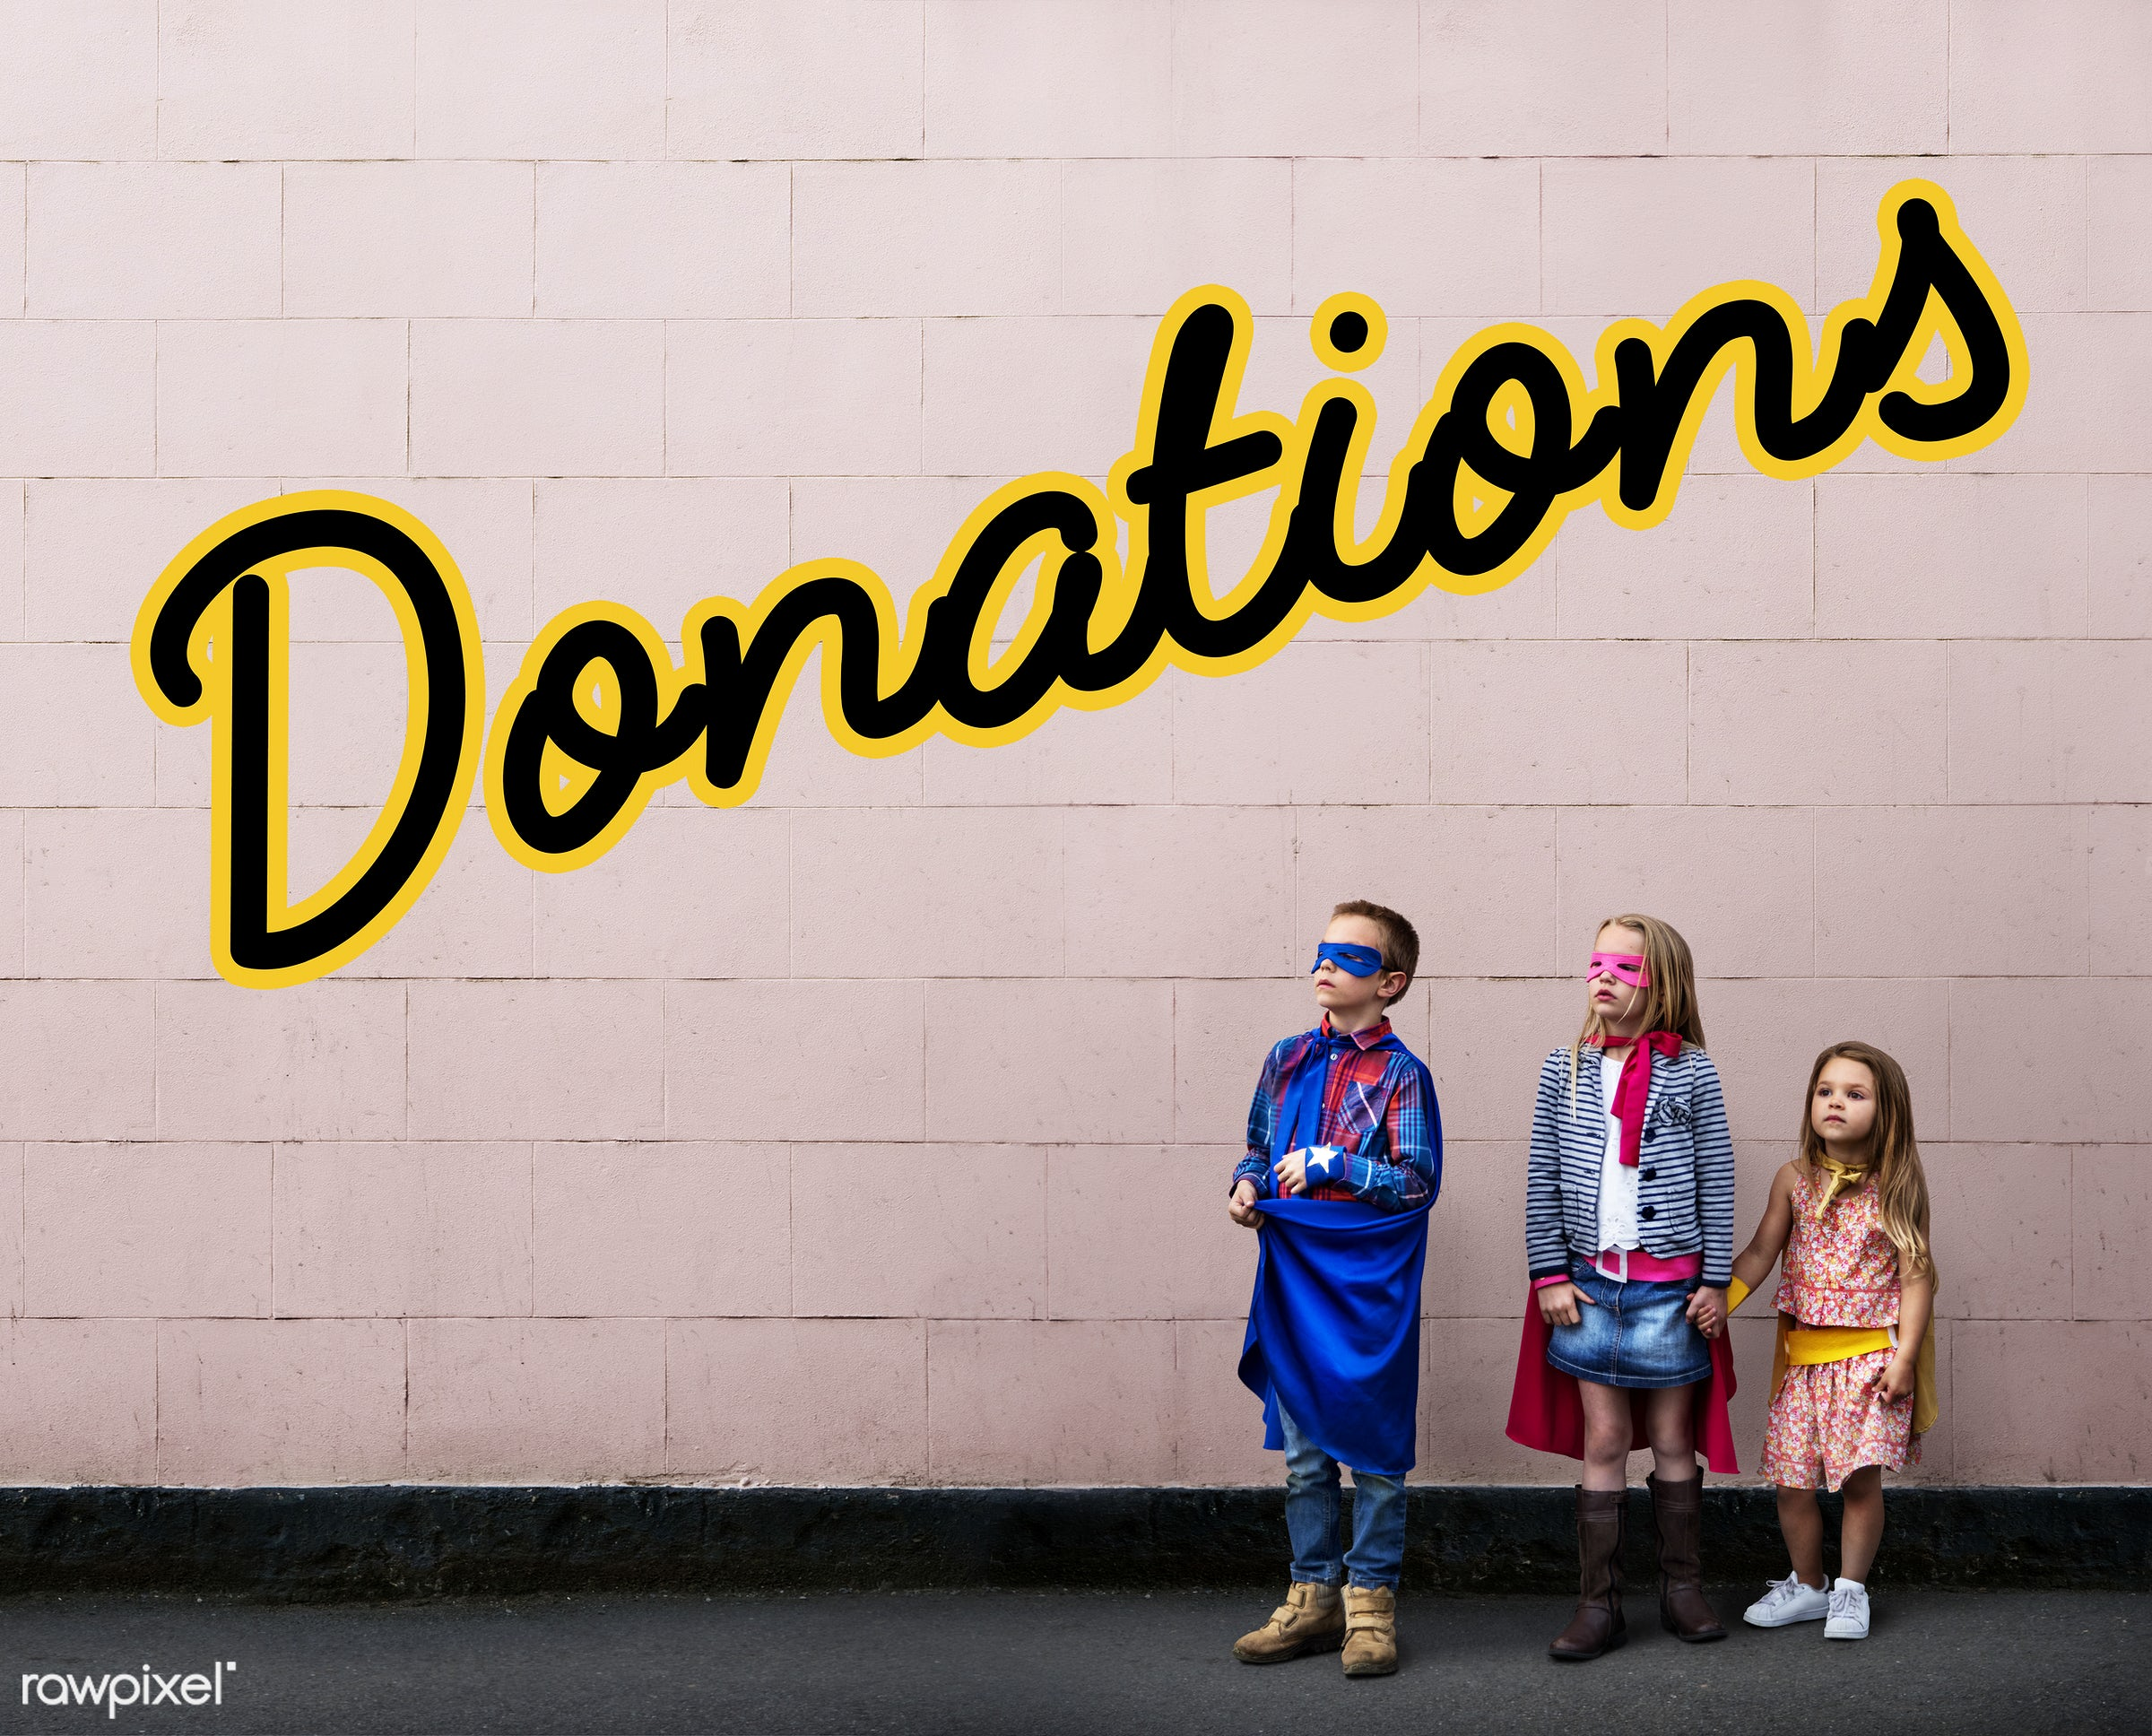 activist, assistance, boy, brave, brother, budget, care, charity, collecting, community, costume, donations, dressed up,...